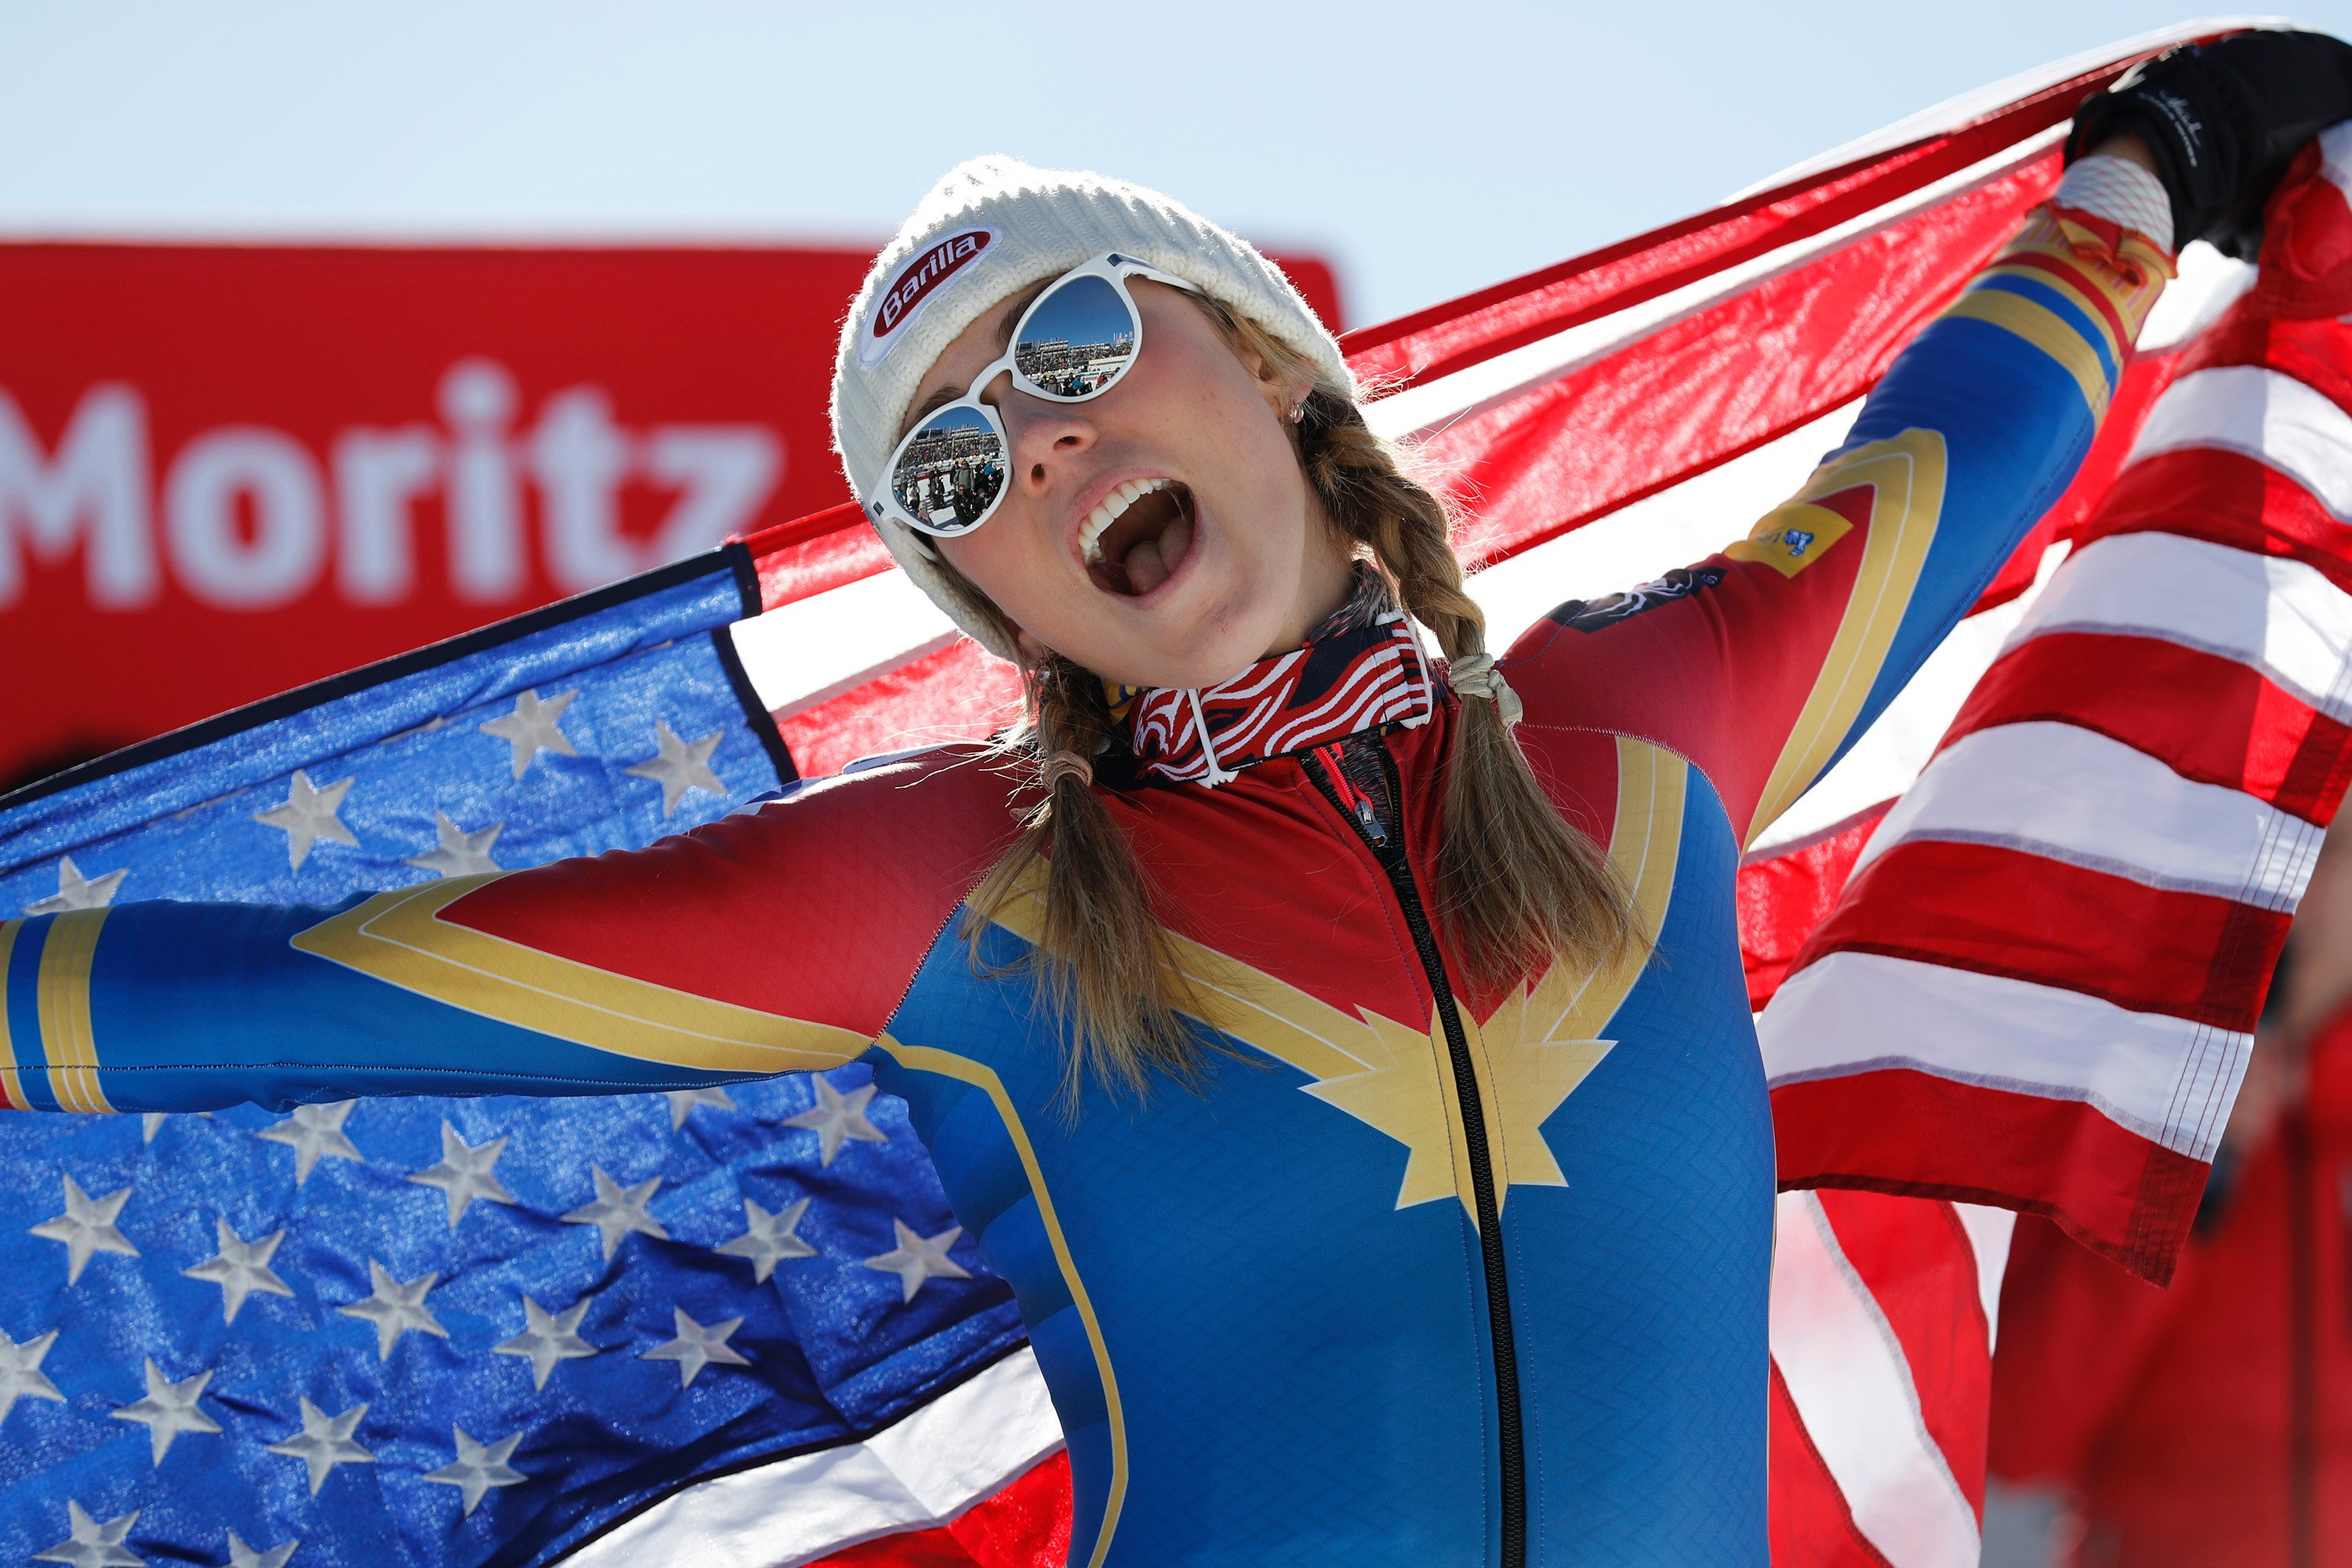 Marvel helps US Olympians look more heroic on the slopes